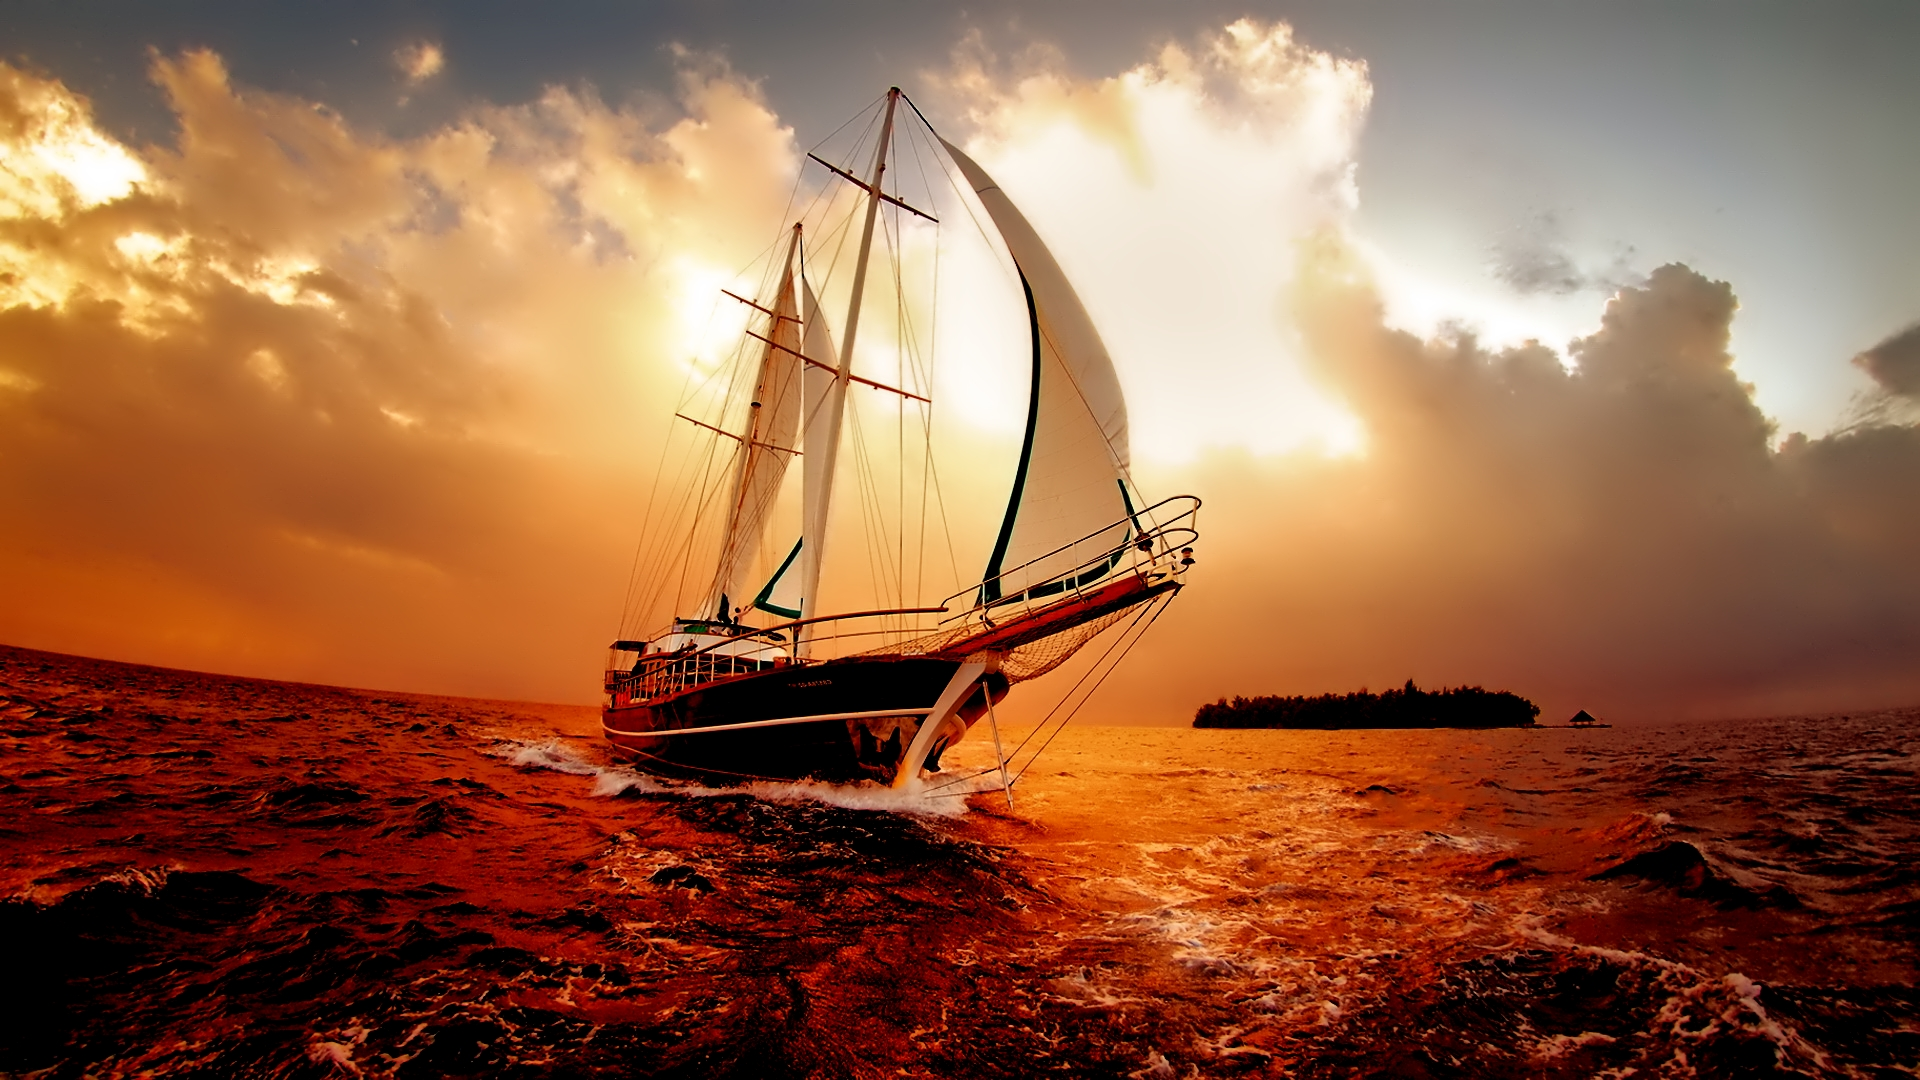 Sailboats HD Desktop Background